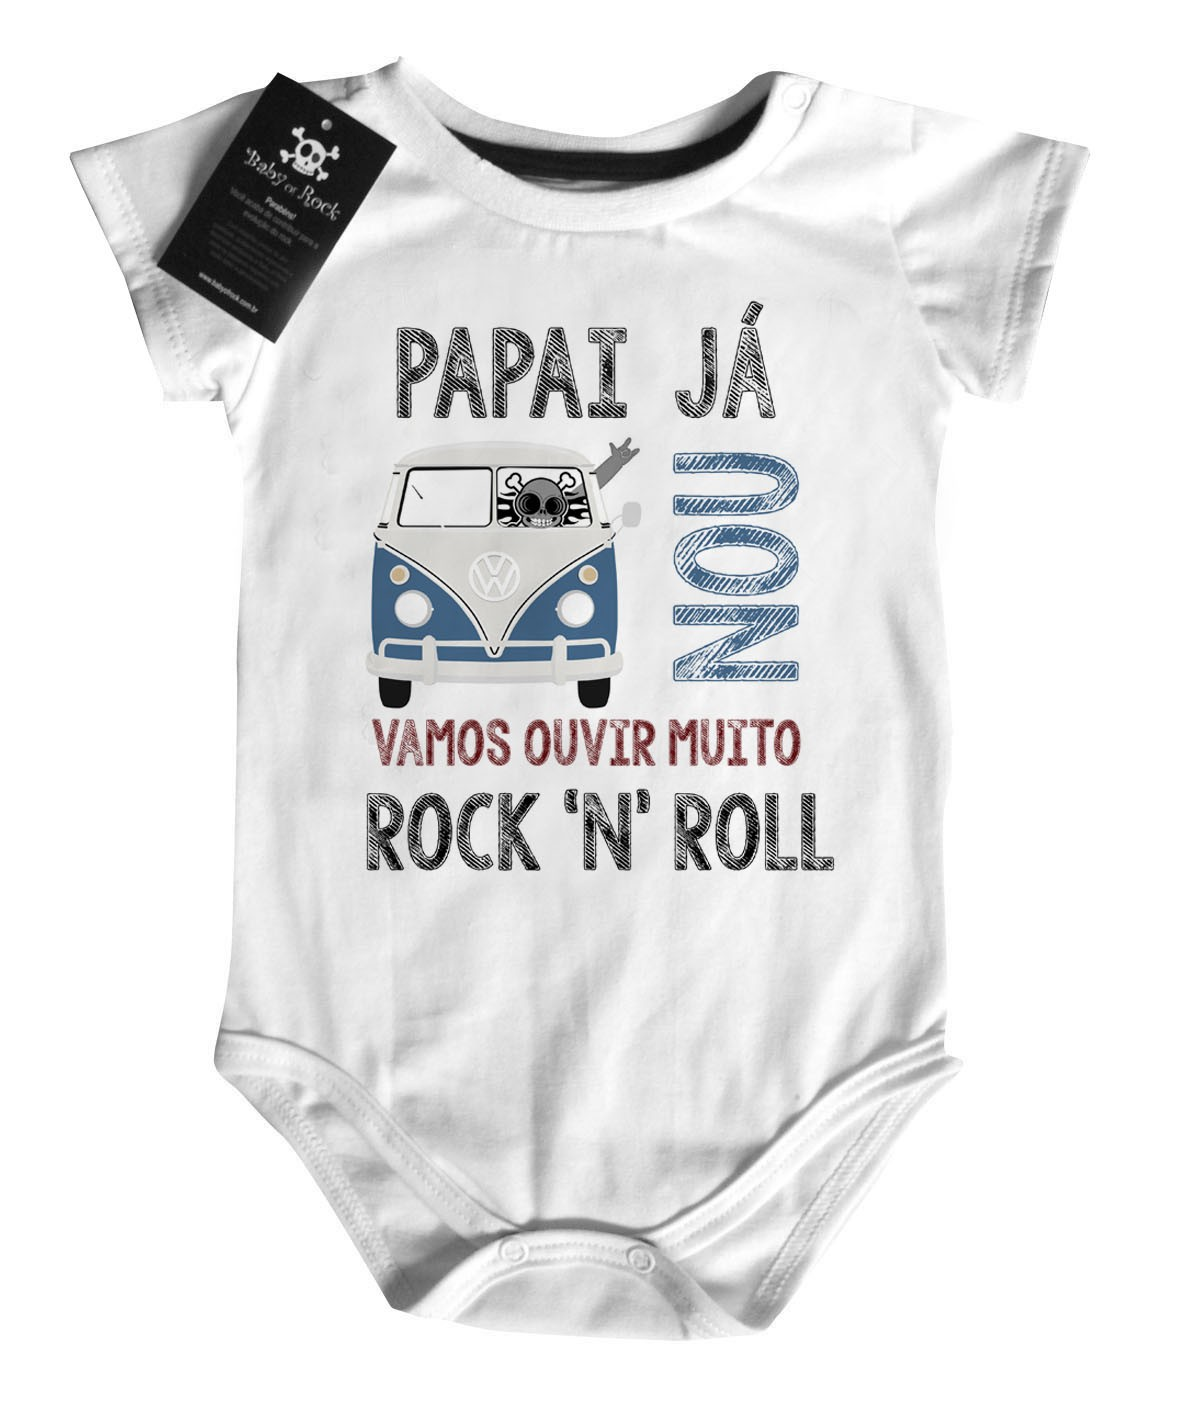 Body Baby Rock - Papai ja kombinou- White  - Baby Monster - Body Bebe